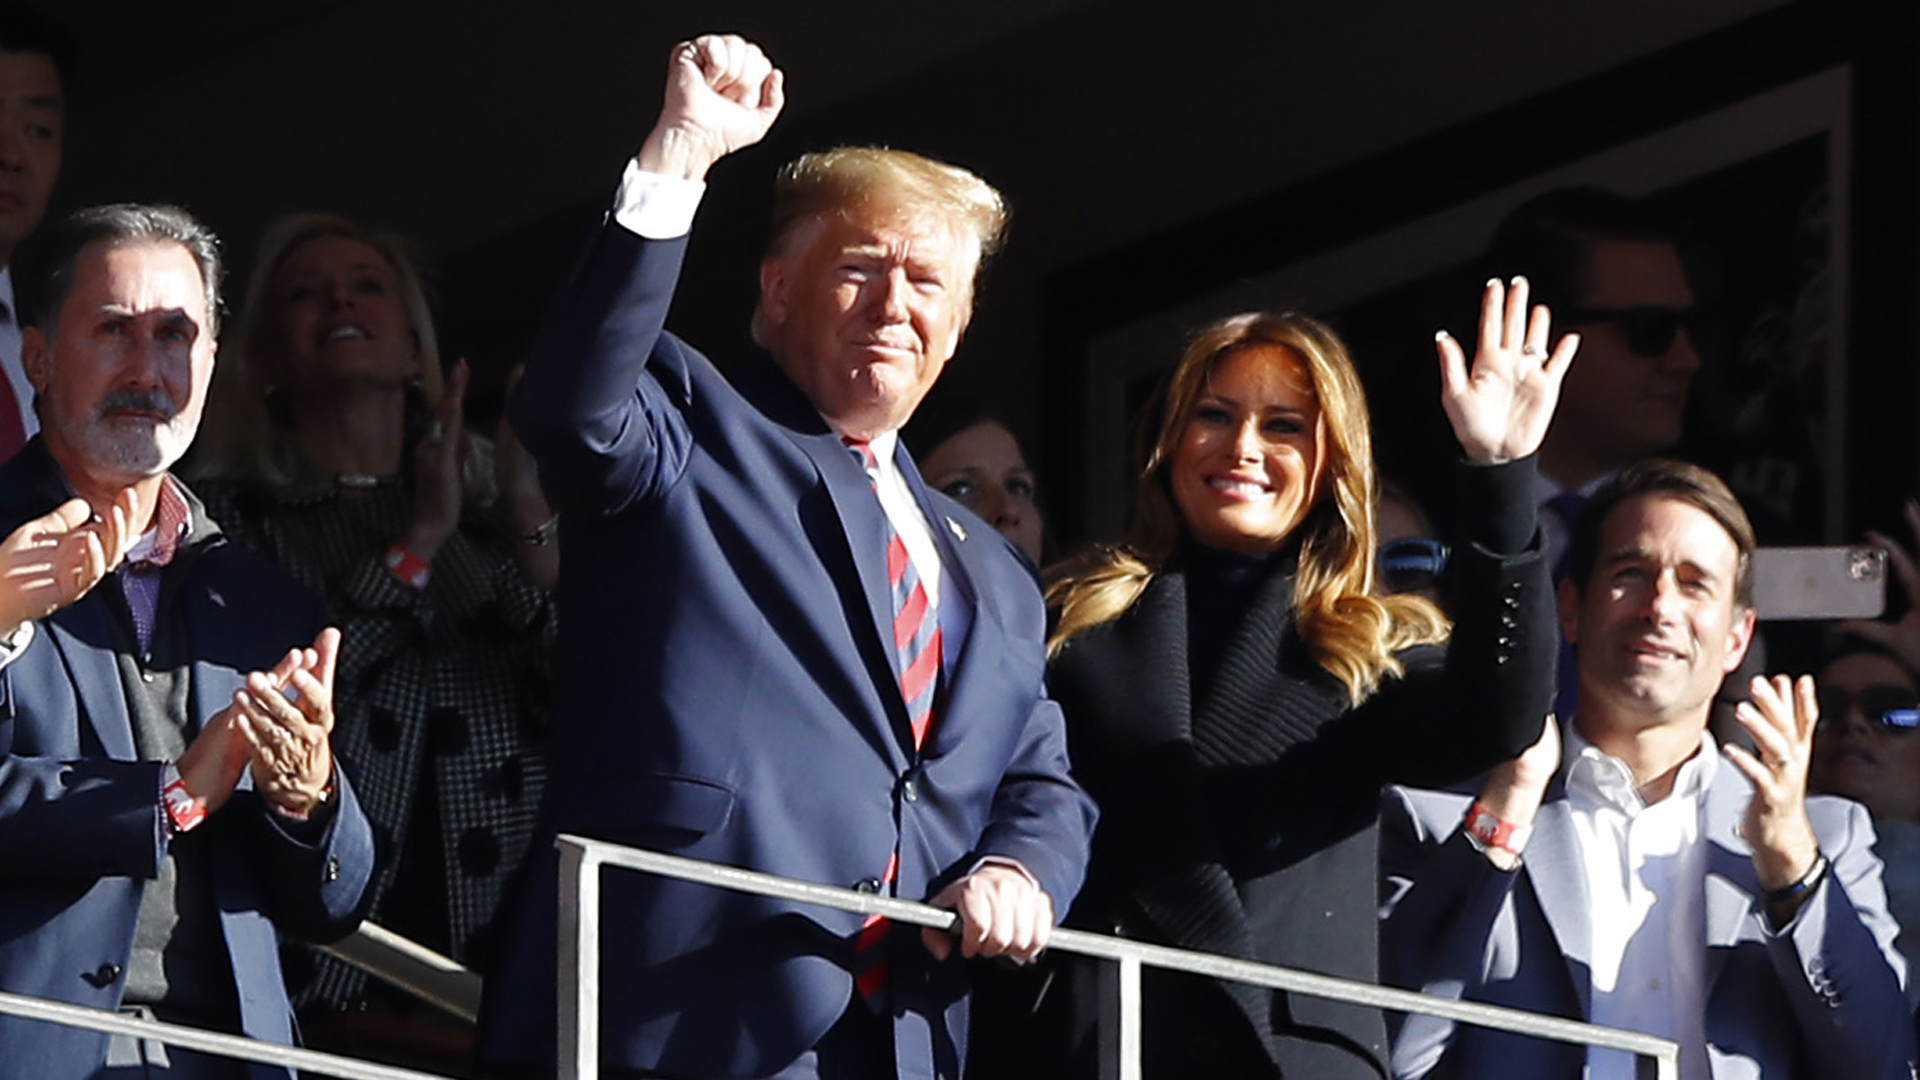 President Donald Trump and first lady Melania Trump attend the game between the LSU Tigers and the Alabama Crimson Tide at Bryant-Denny Stadium on November 09, 2019 in Tuscaloosa, Alabama. (Credit: Kevin C. Cox/Getty Images)